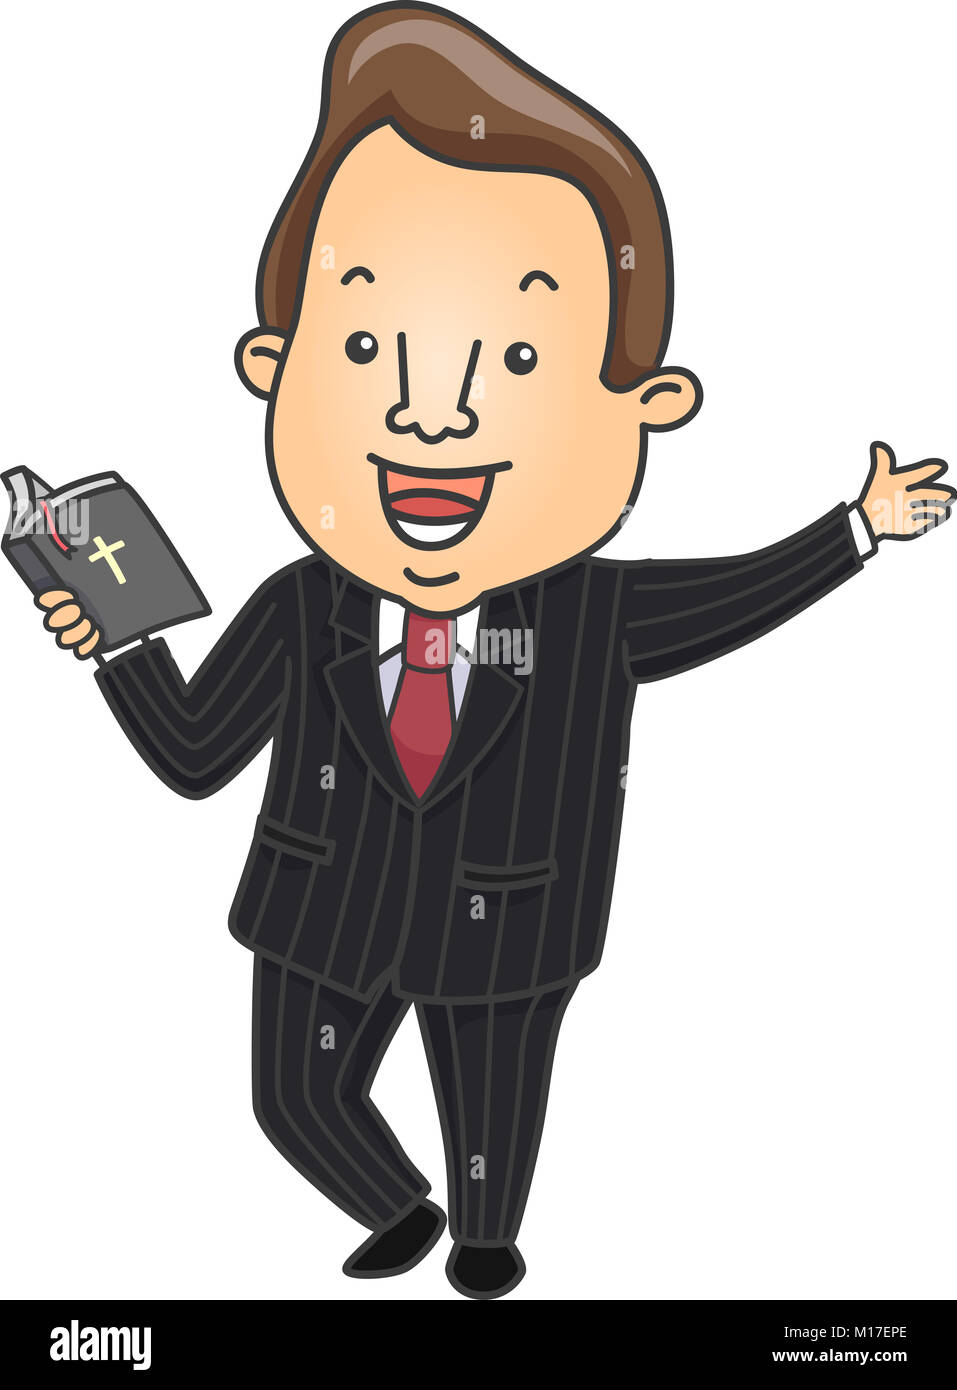 medium resolution of illustration of a preacher holding a bible happily preaching